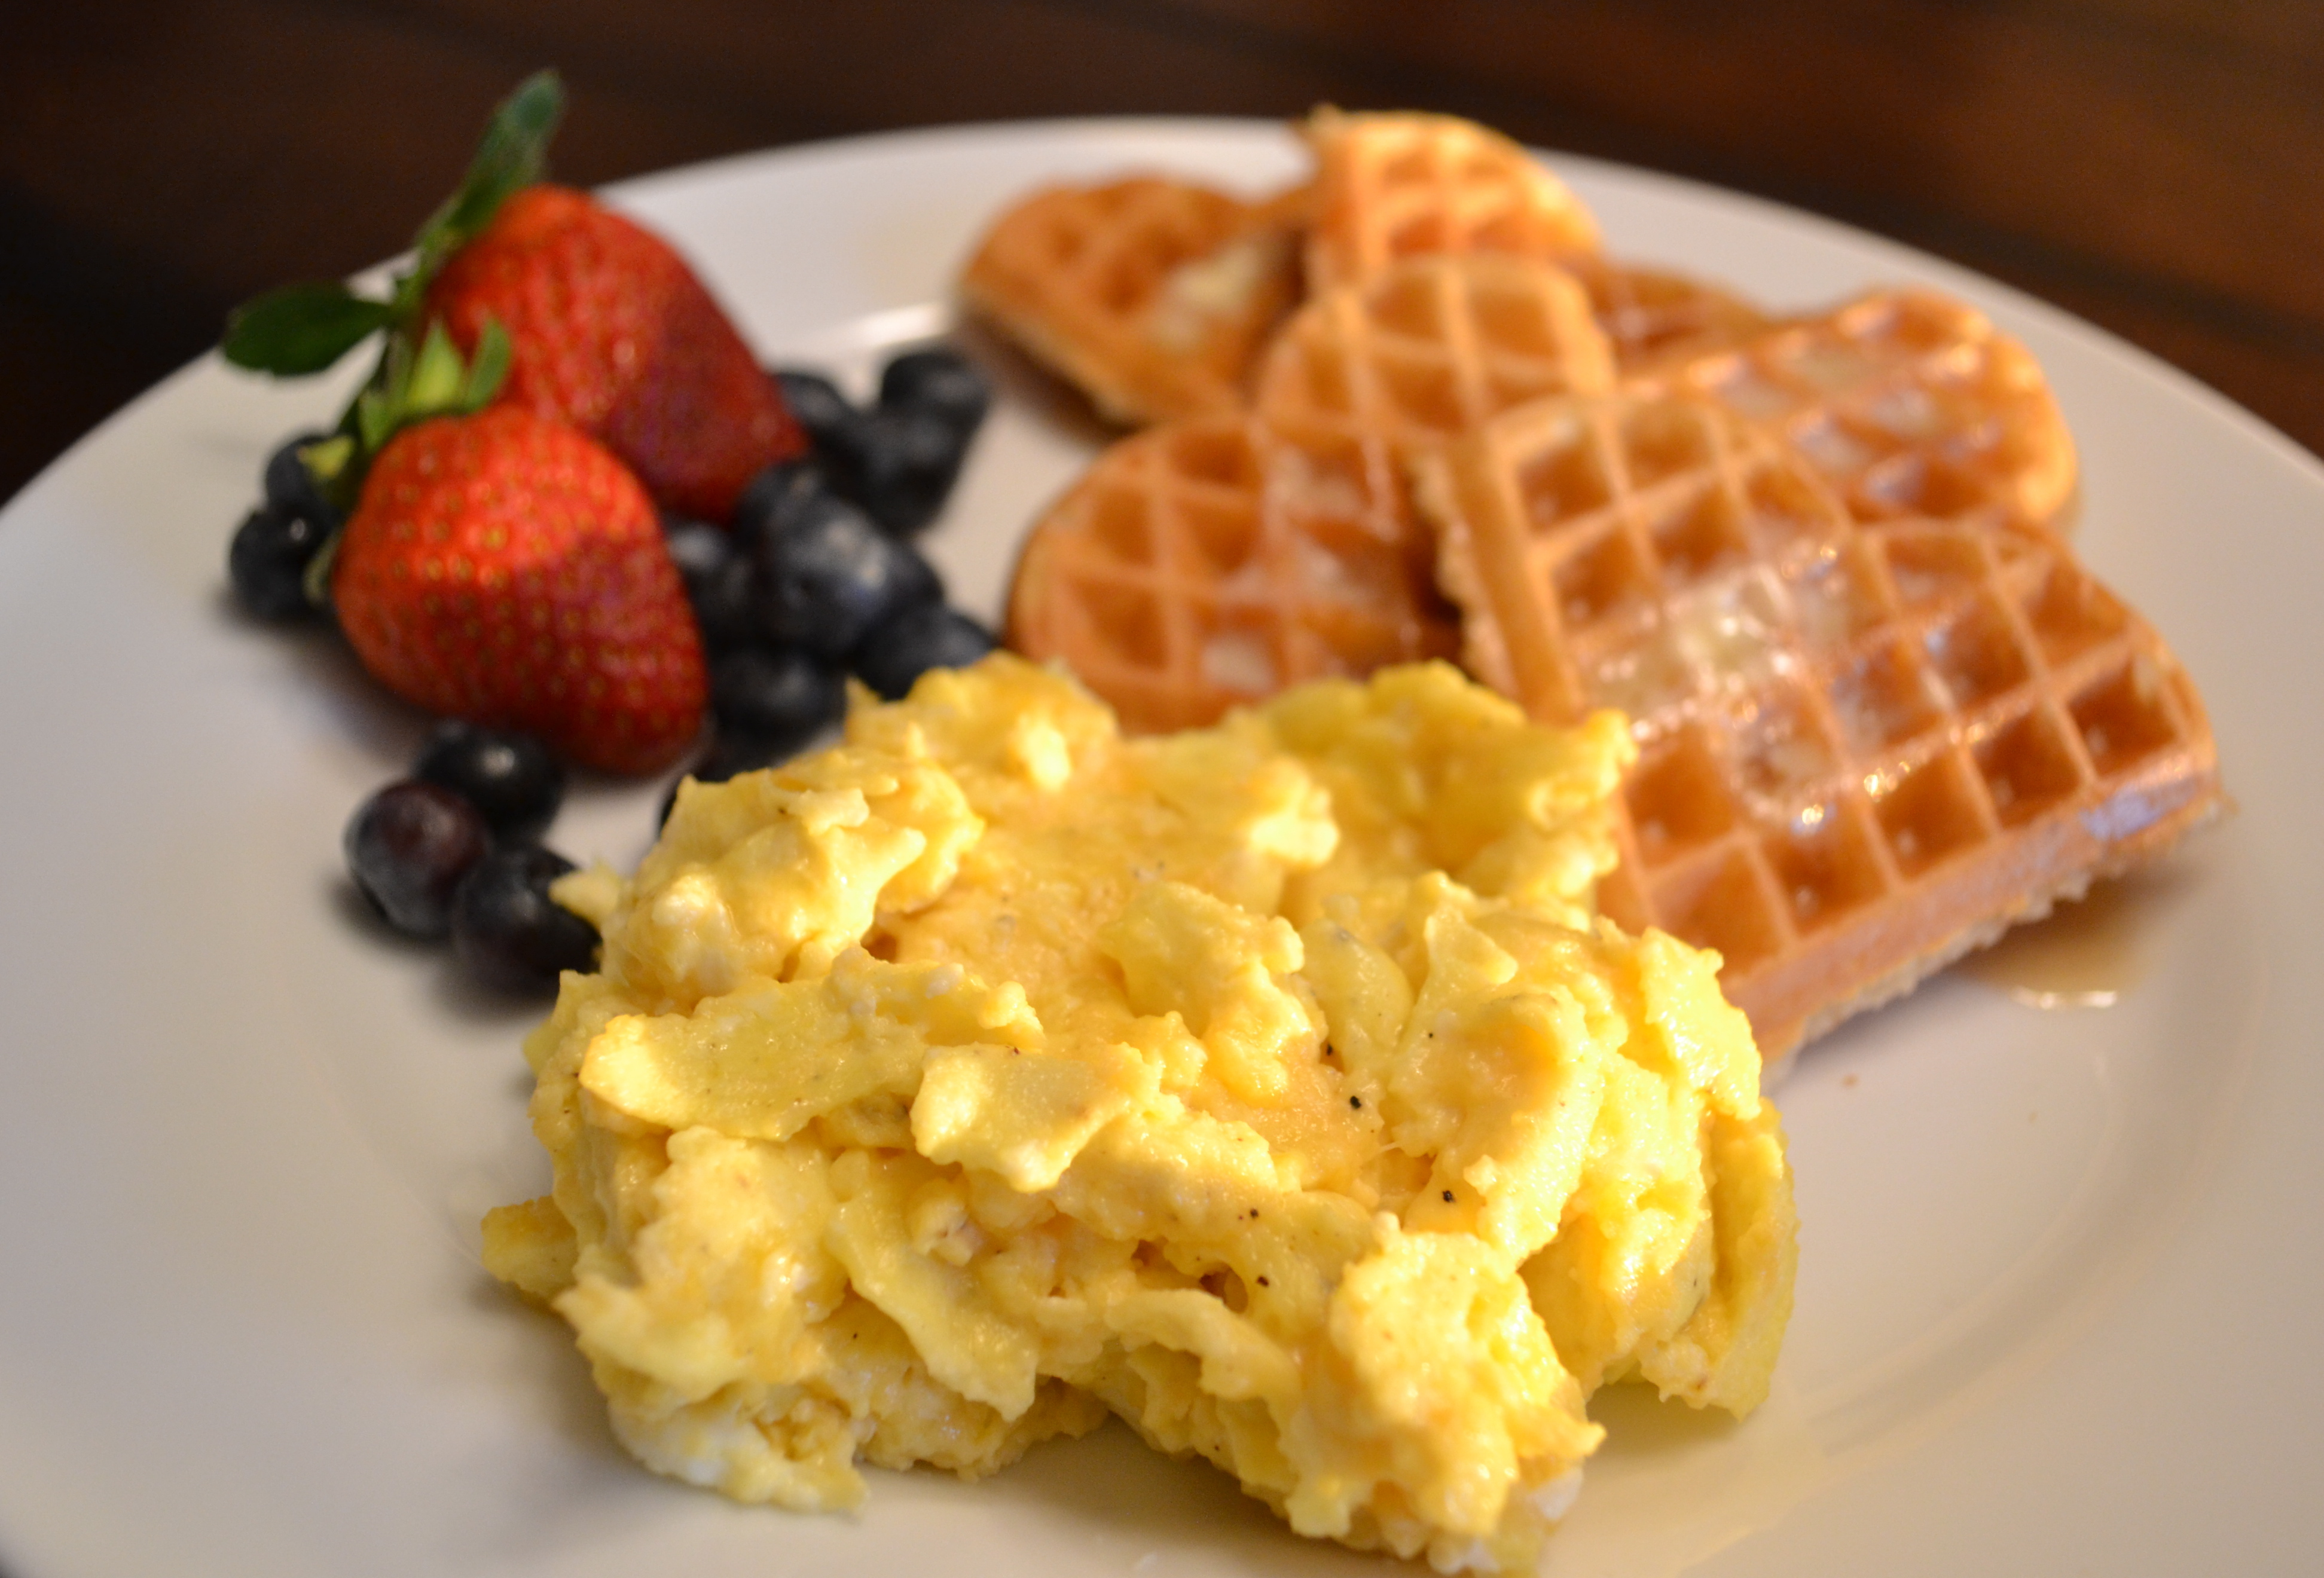 How to Make the Best Scrambled Eggs - CHCKNS